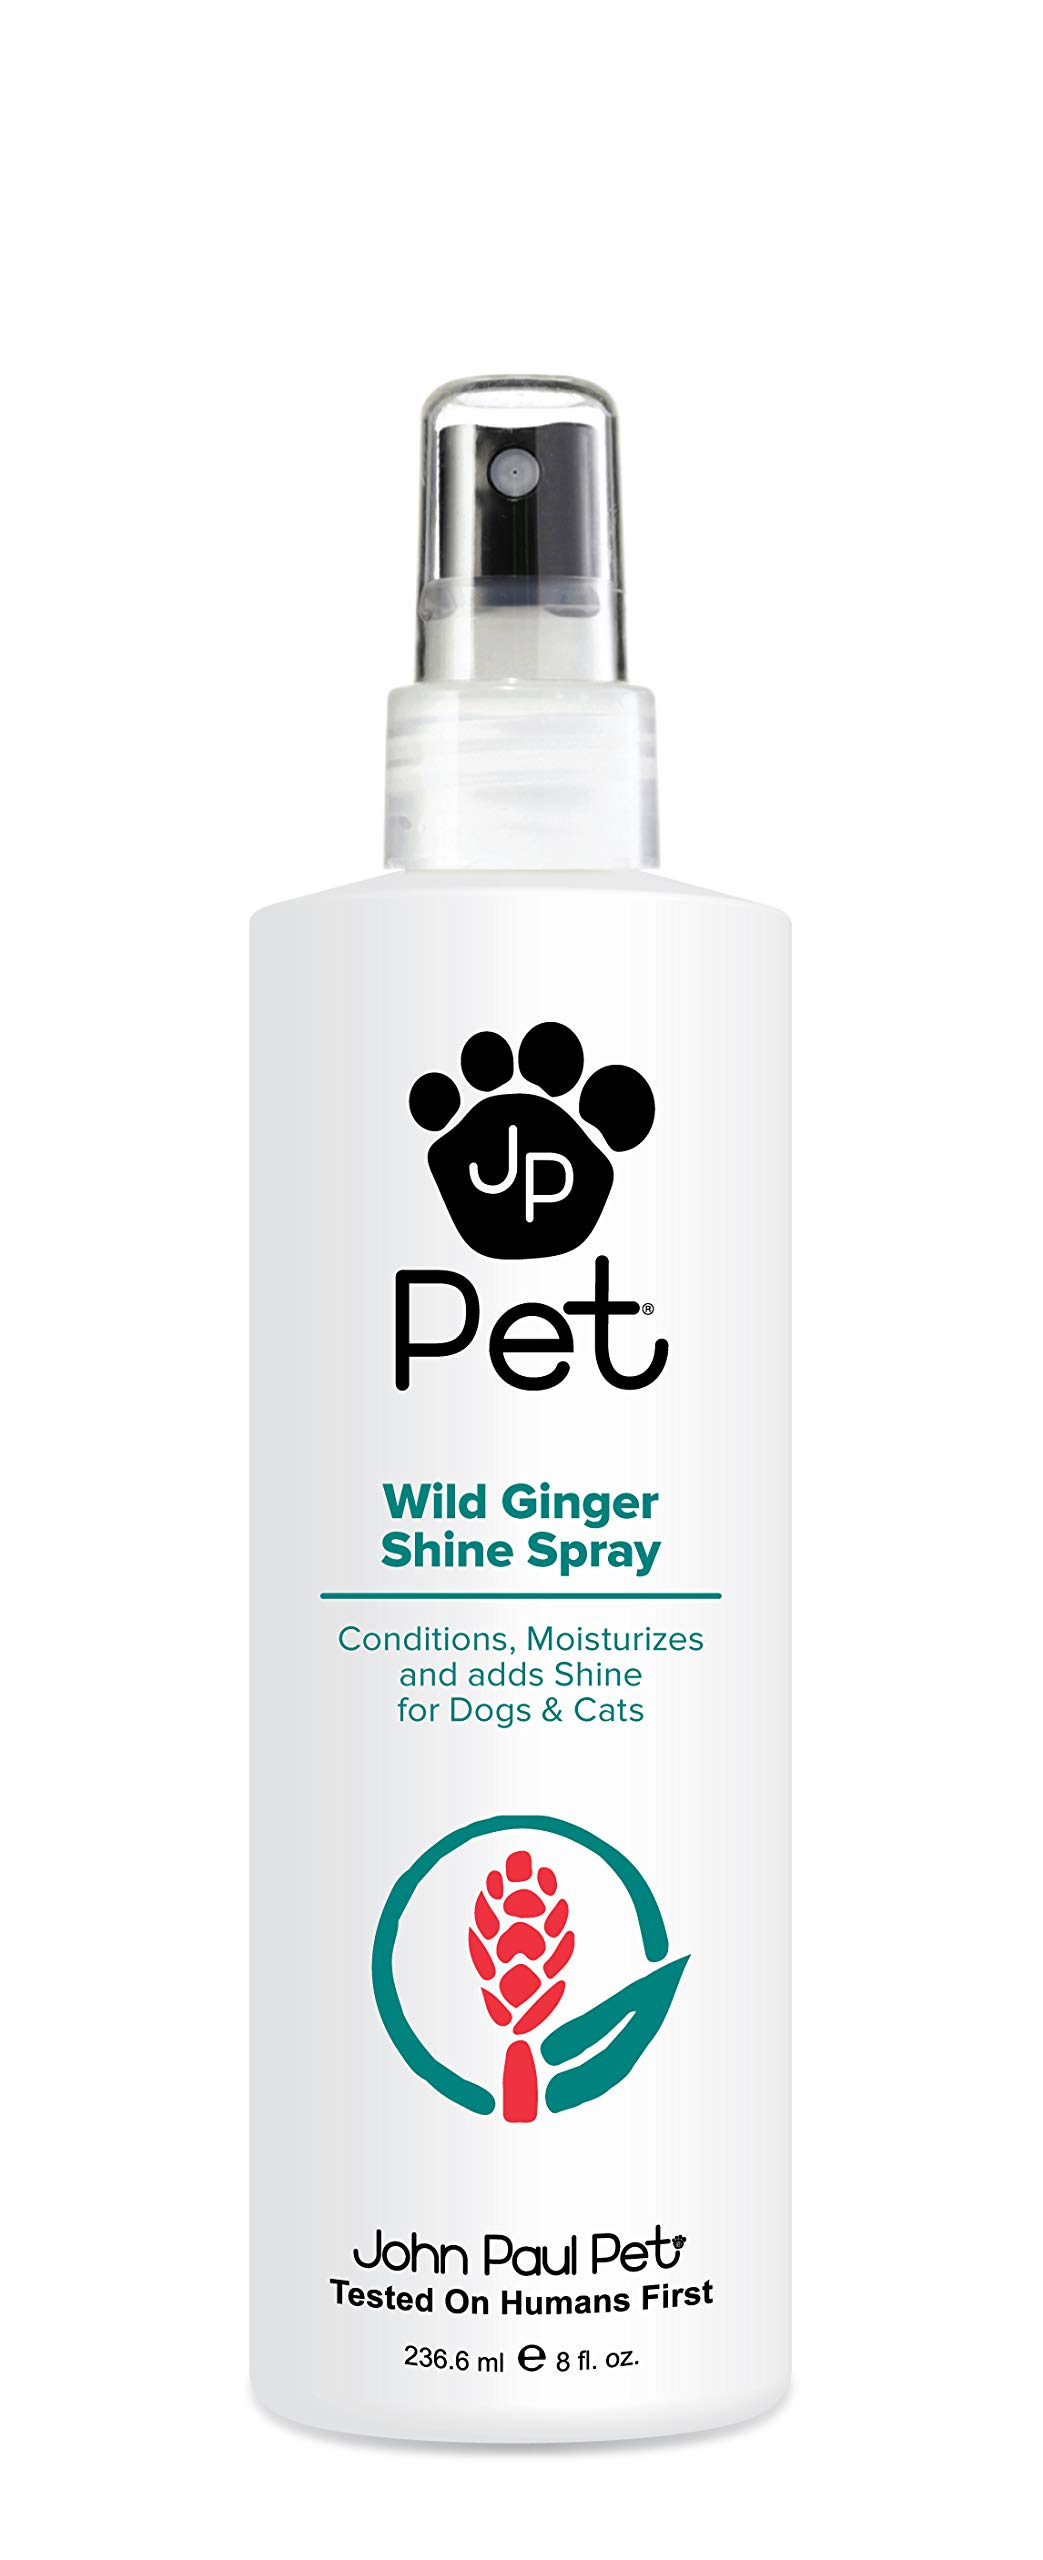 John Paul Pet Wild Ginger Shine Spray for Dogs and Cats, Soothes Conditions Moisturizes and Revitalizes Shine, Non-Aerosol, 8-Ounce by John Paul Pet